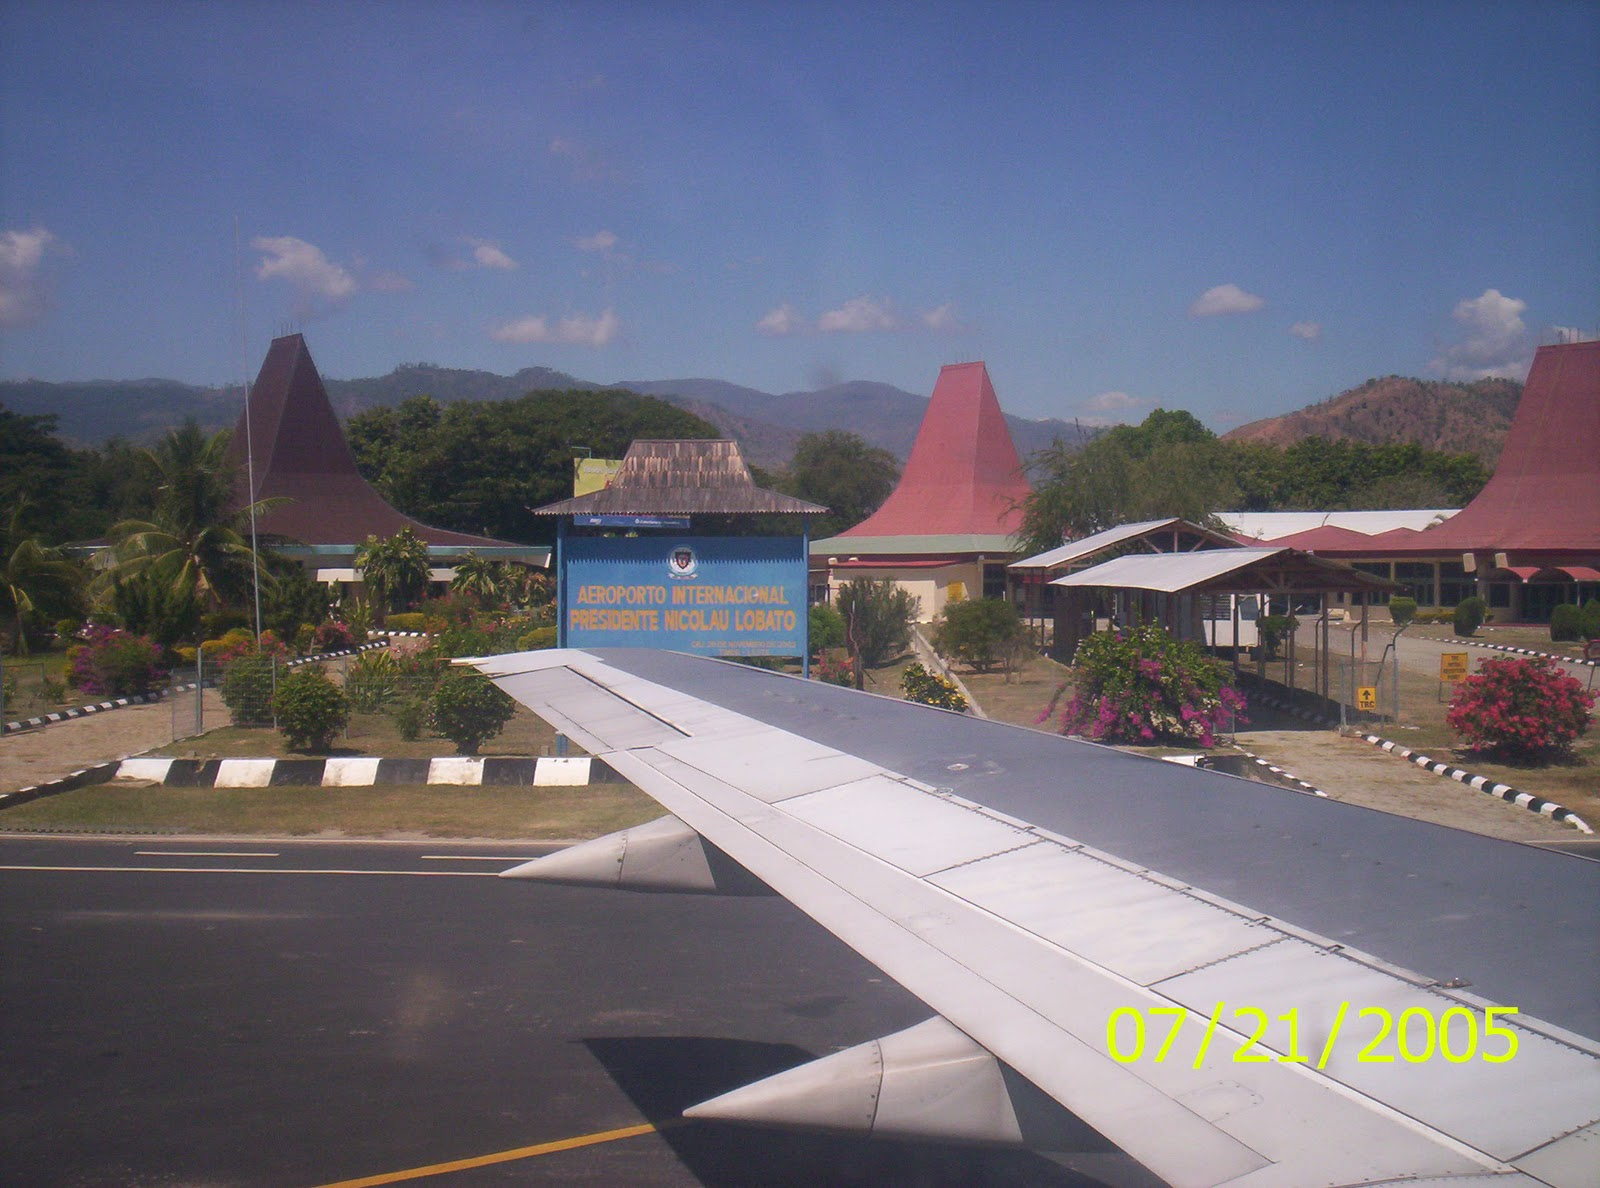 Aeroporto Dili : East timor law and justice bulletin: democratic party and fretilin